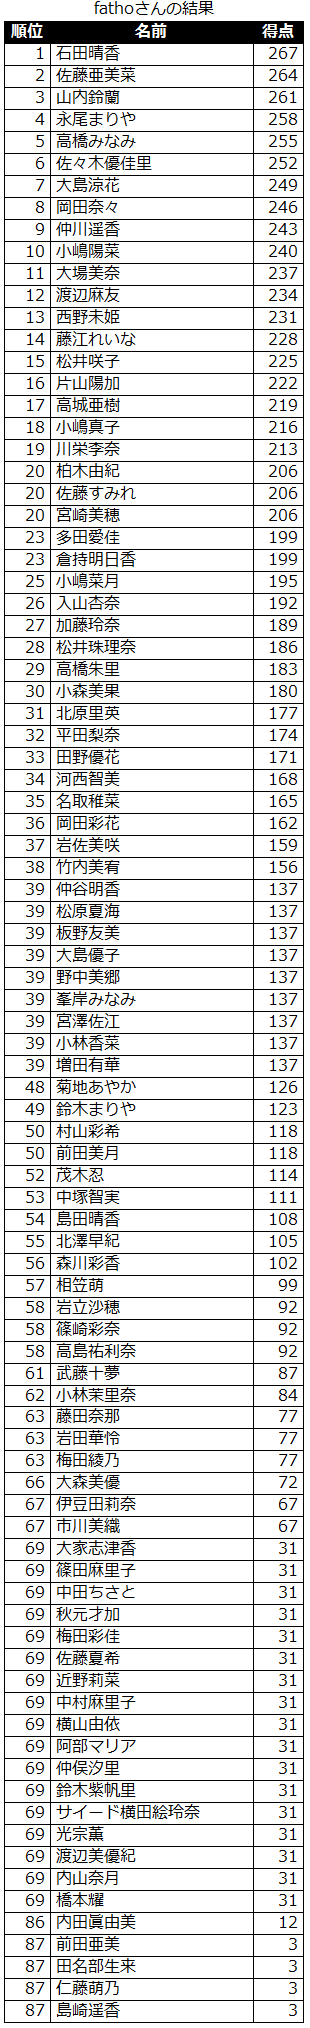 result_akb_sort_20121029